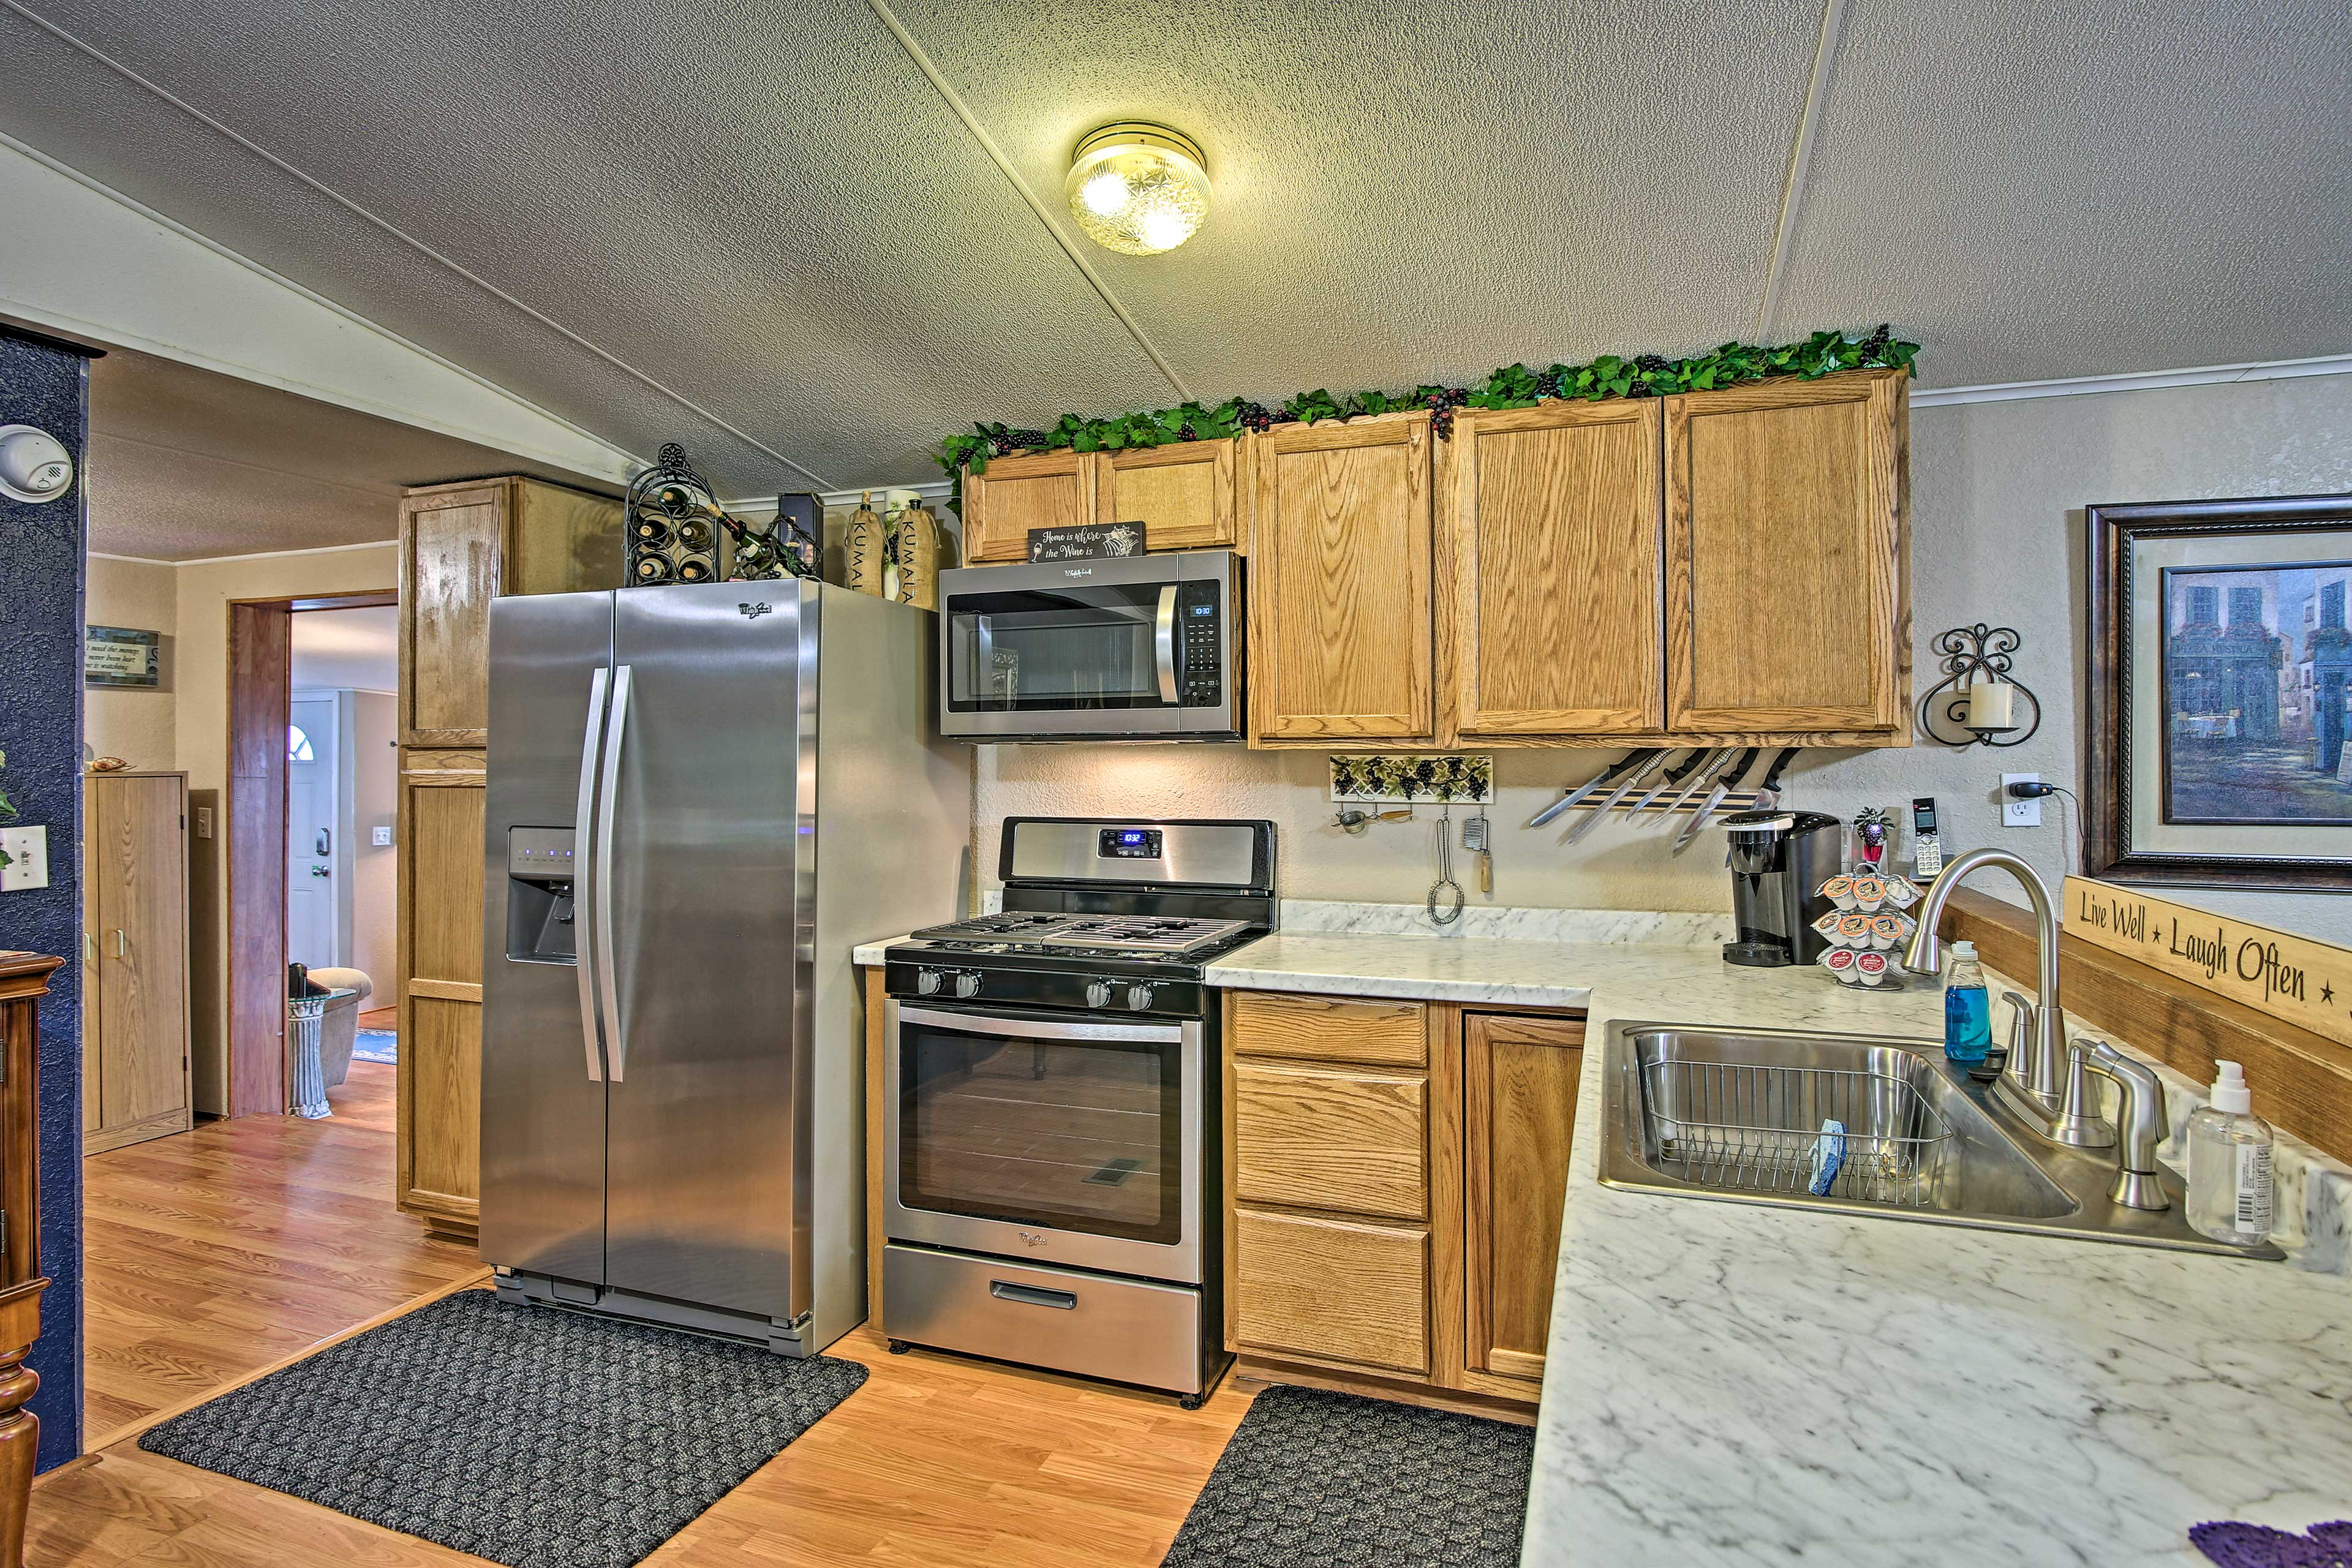 The kitchen is filled with brand new stainless steel appliances.